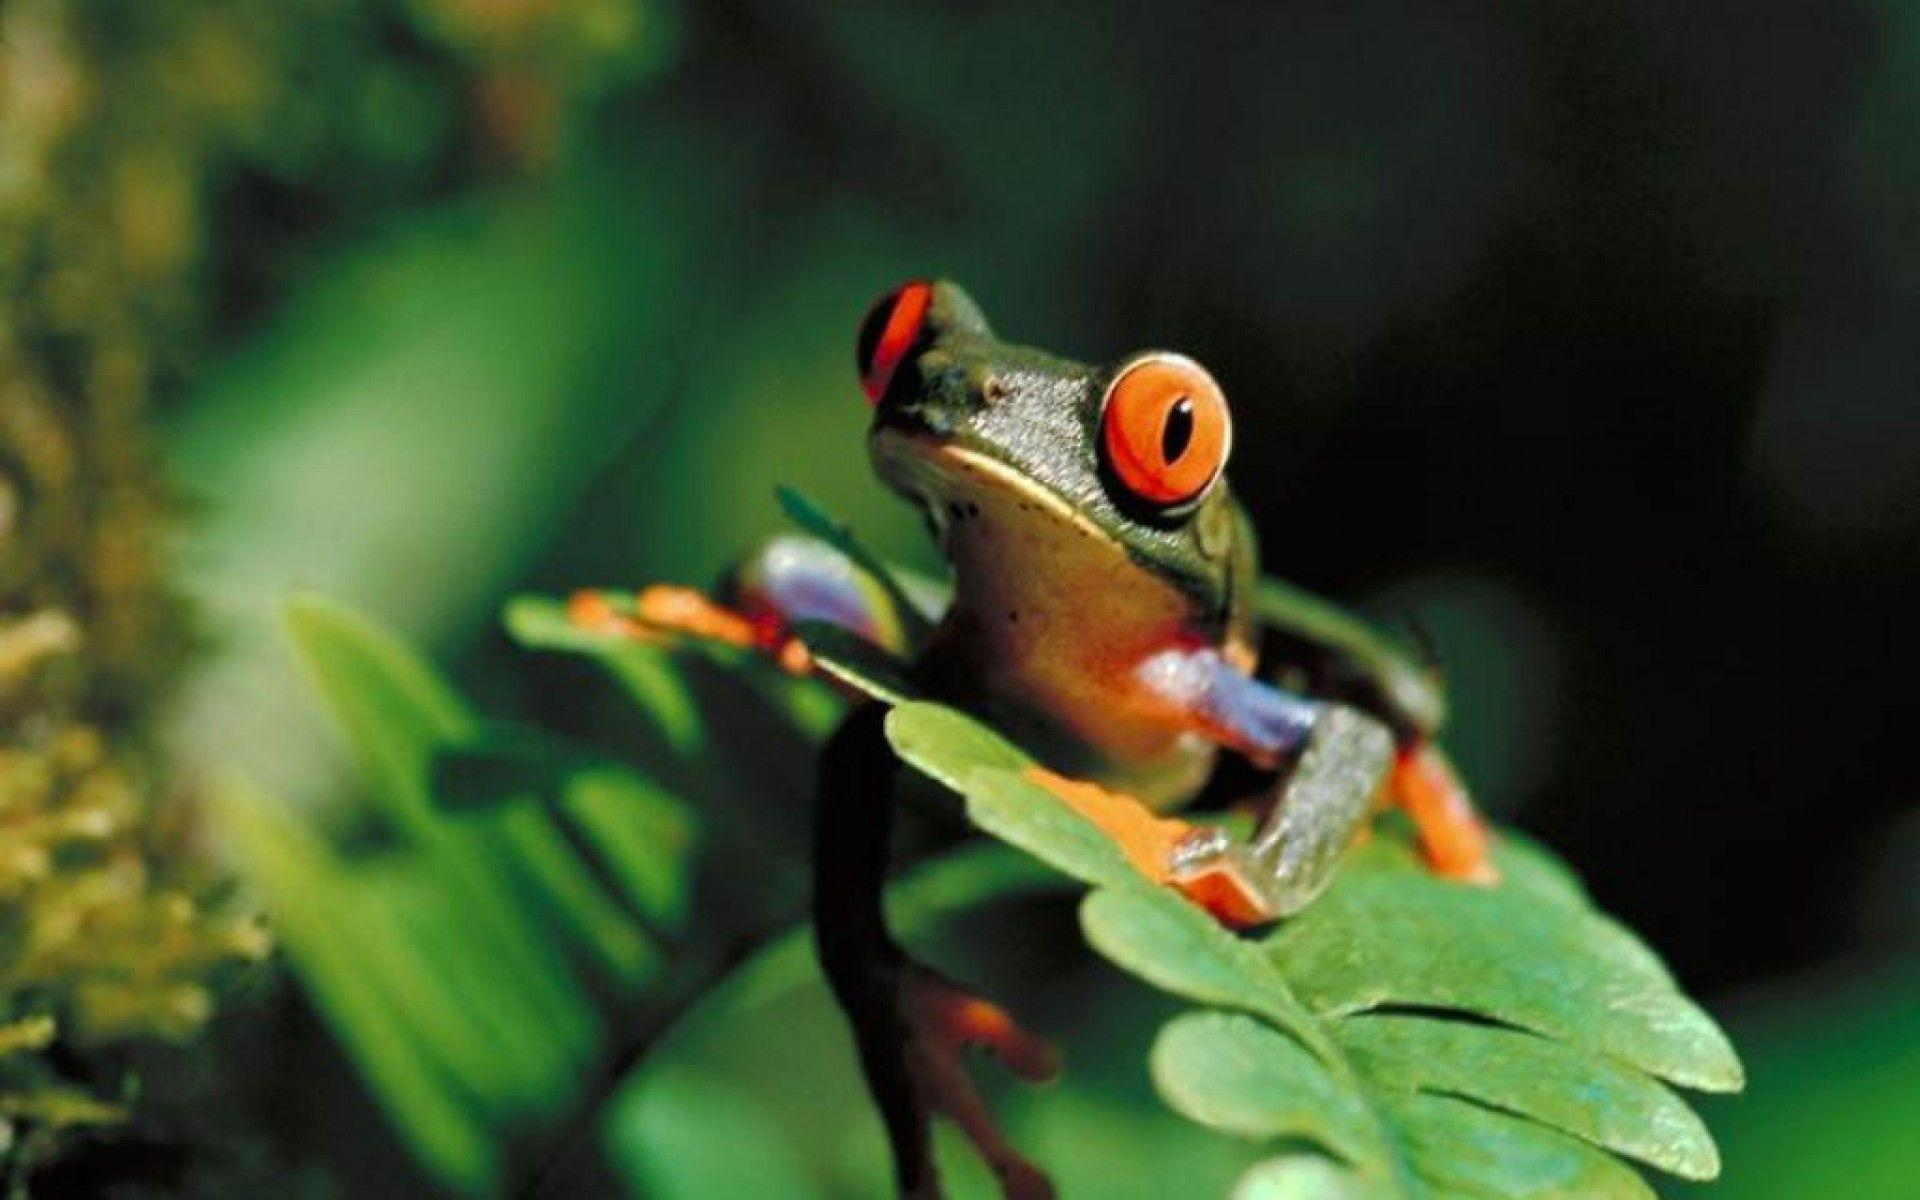 Wonderful Tree Frog Wallpapers 1920x1200PX ~ Frog Wallpapers